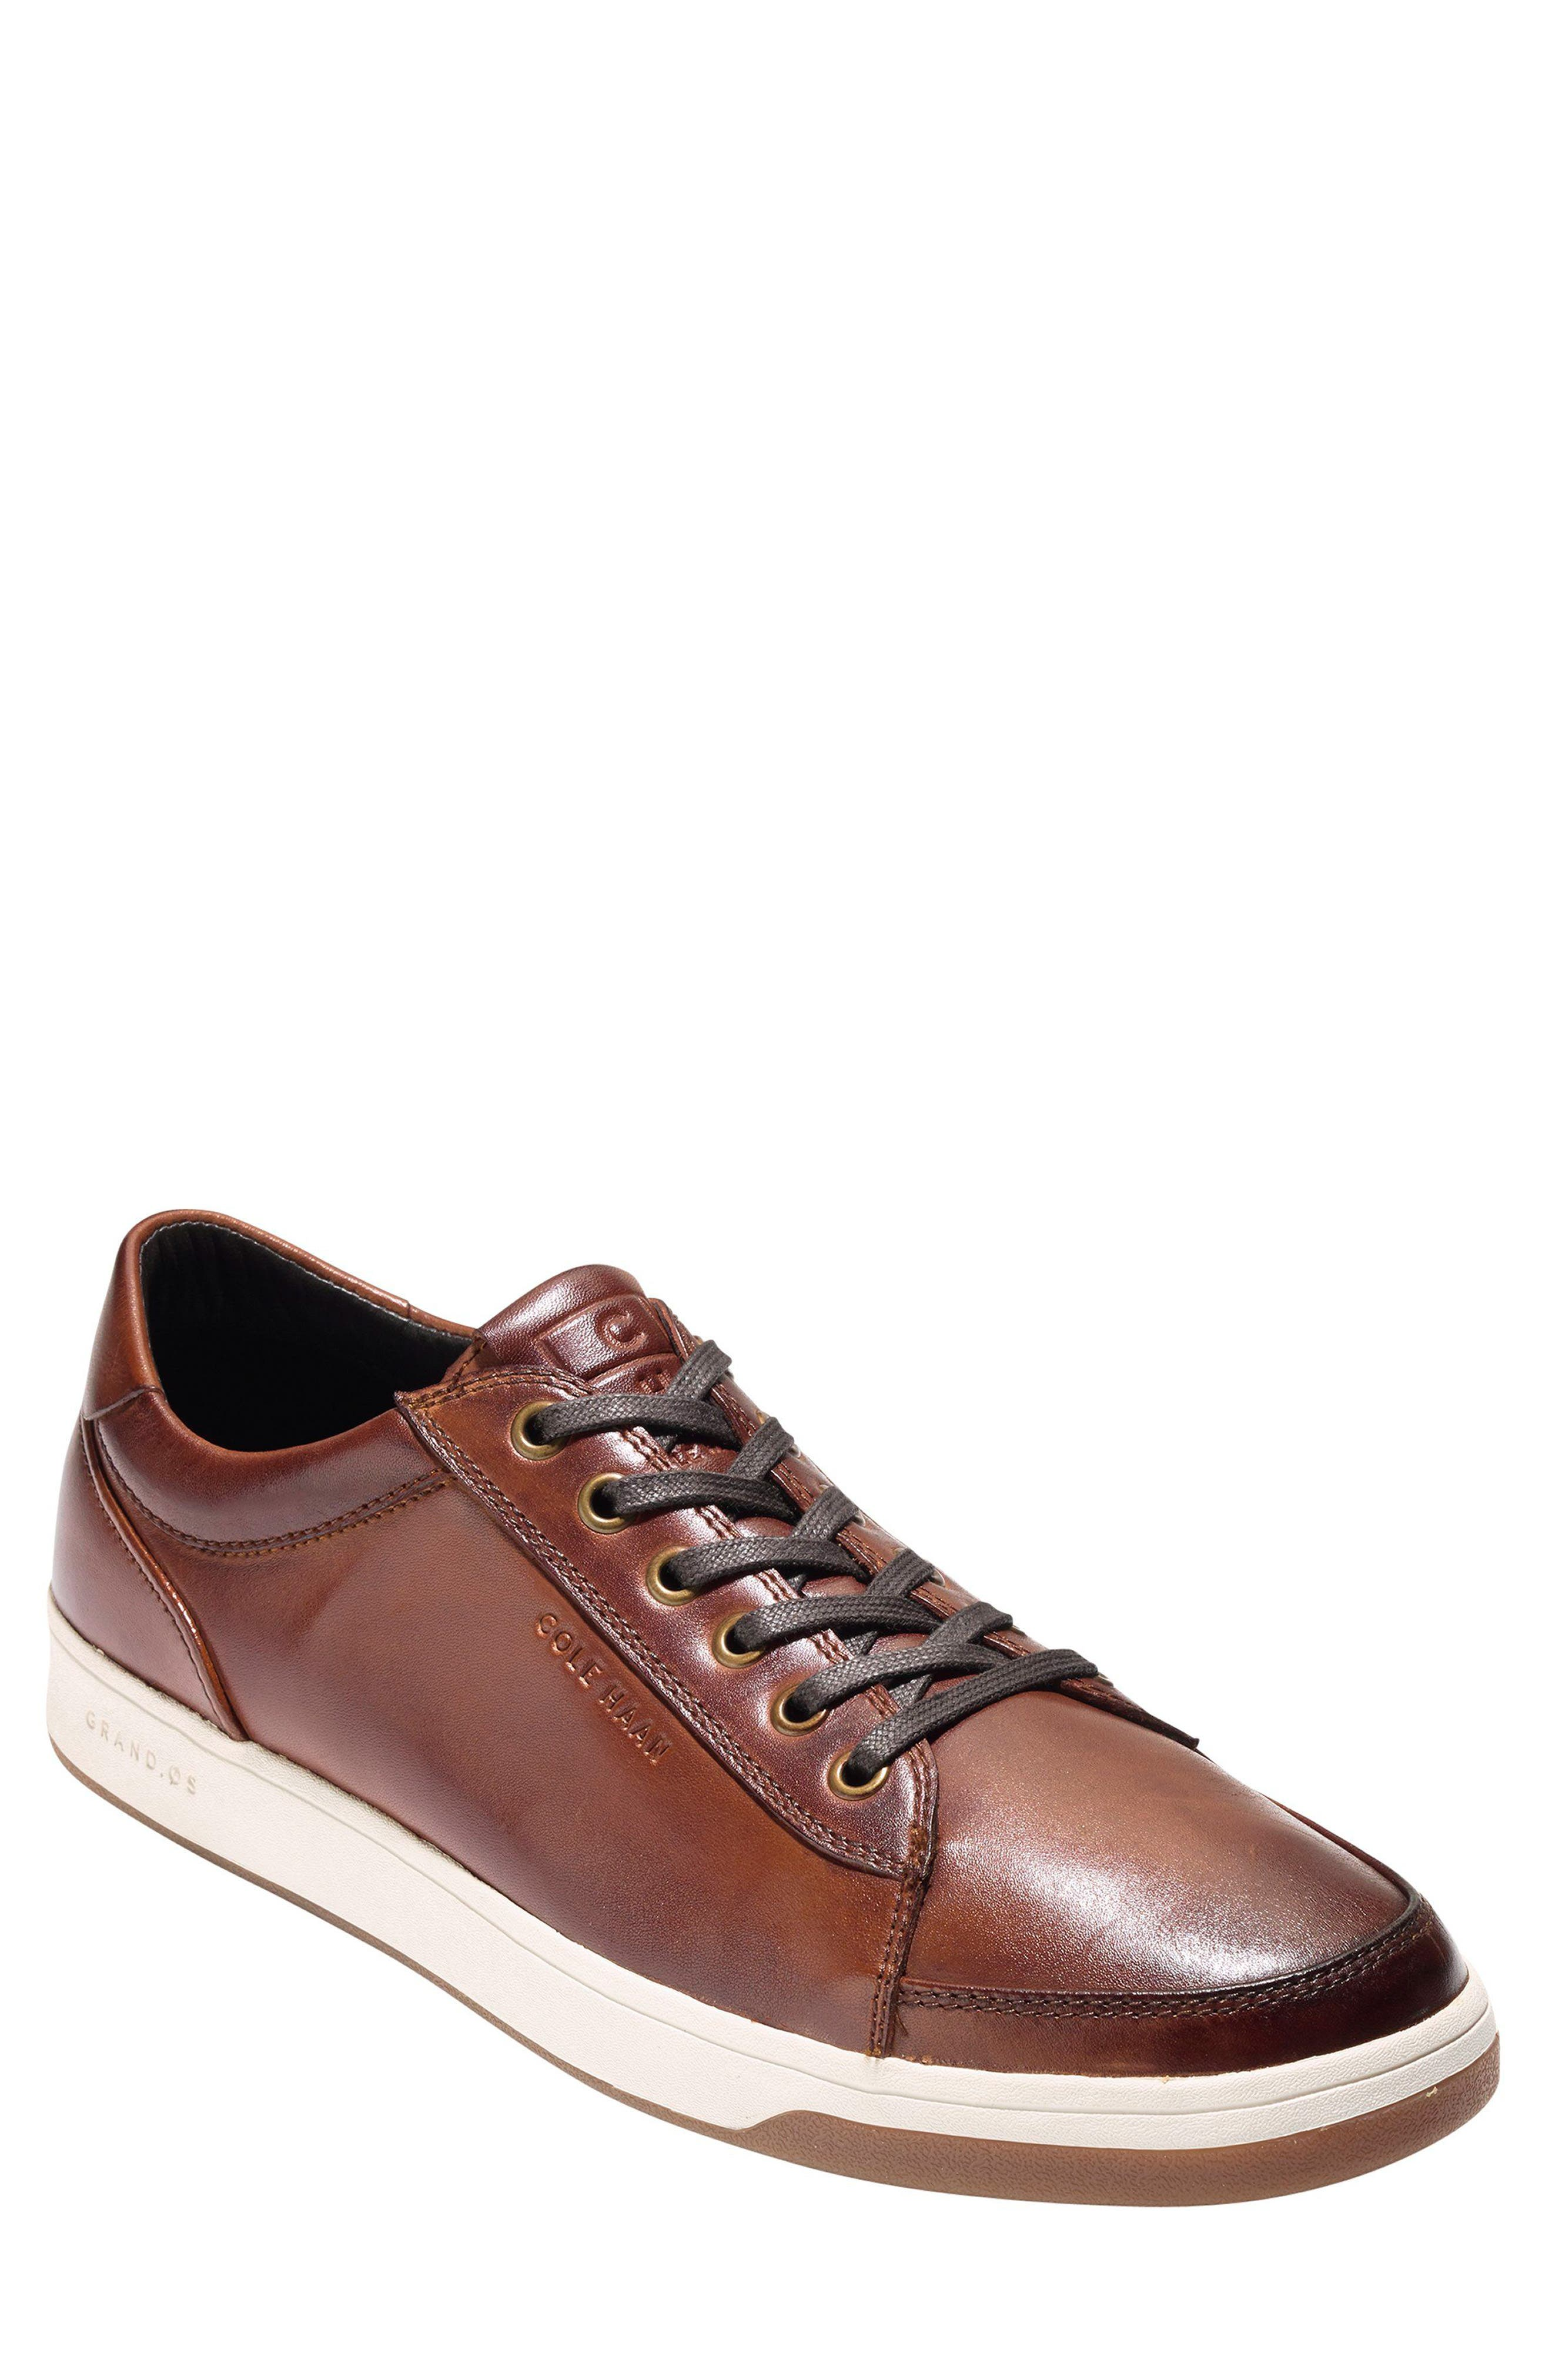 COLE HAAN, GrandPro Spectator Sneaker, Main thumbnail 1, color, WOODBURY LEATHER